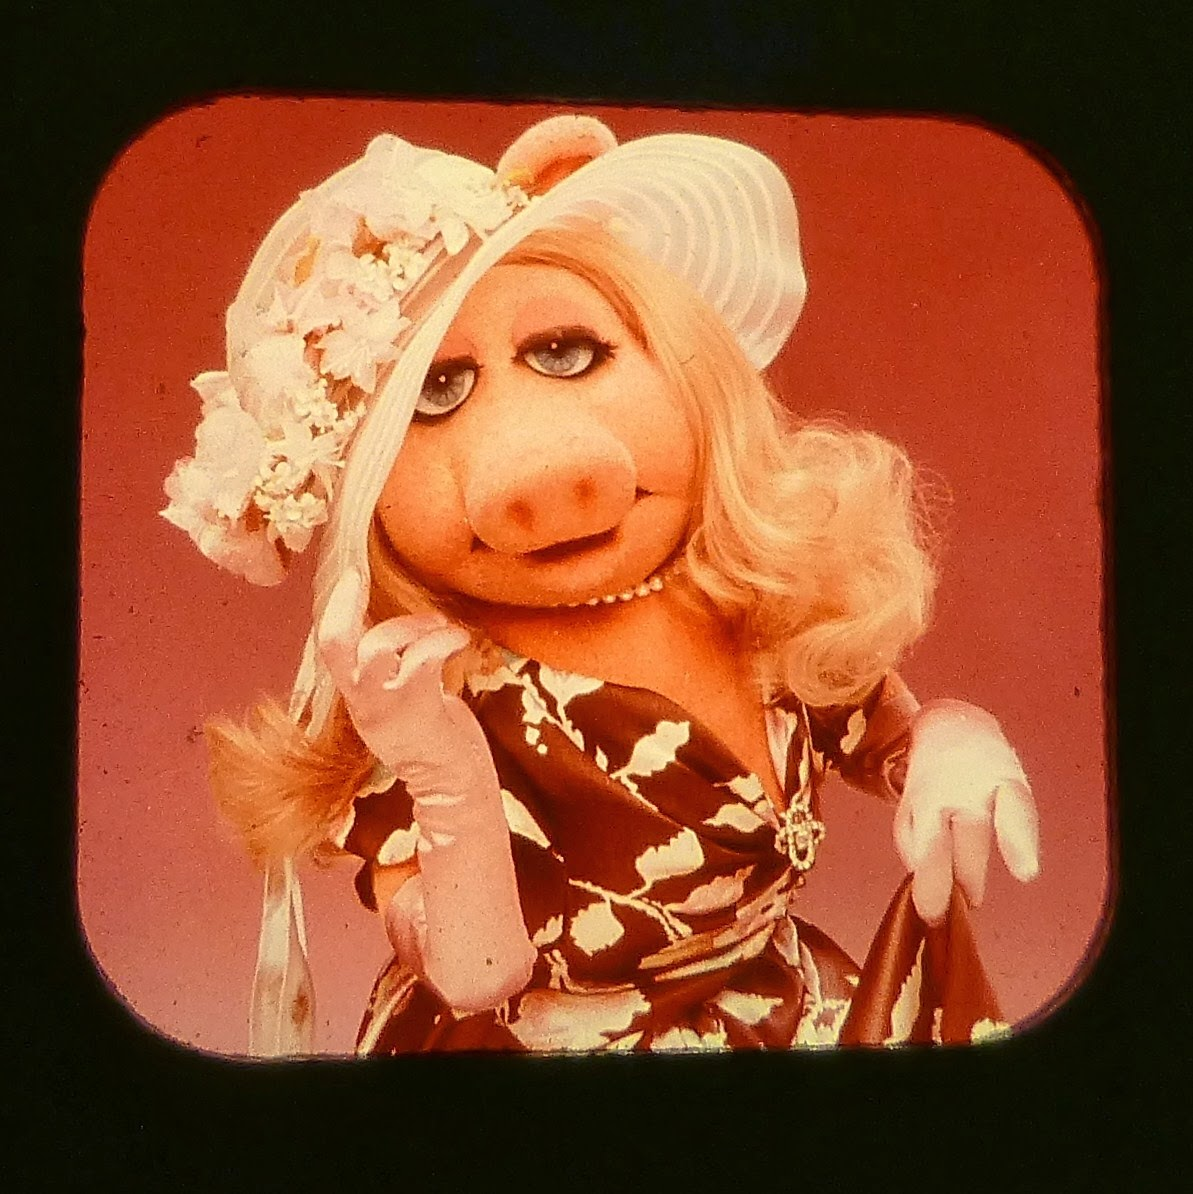 Meet The Muppets View-Master